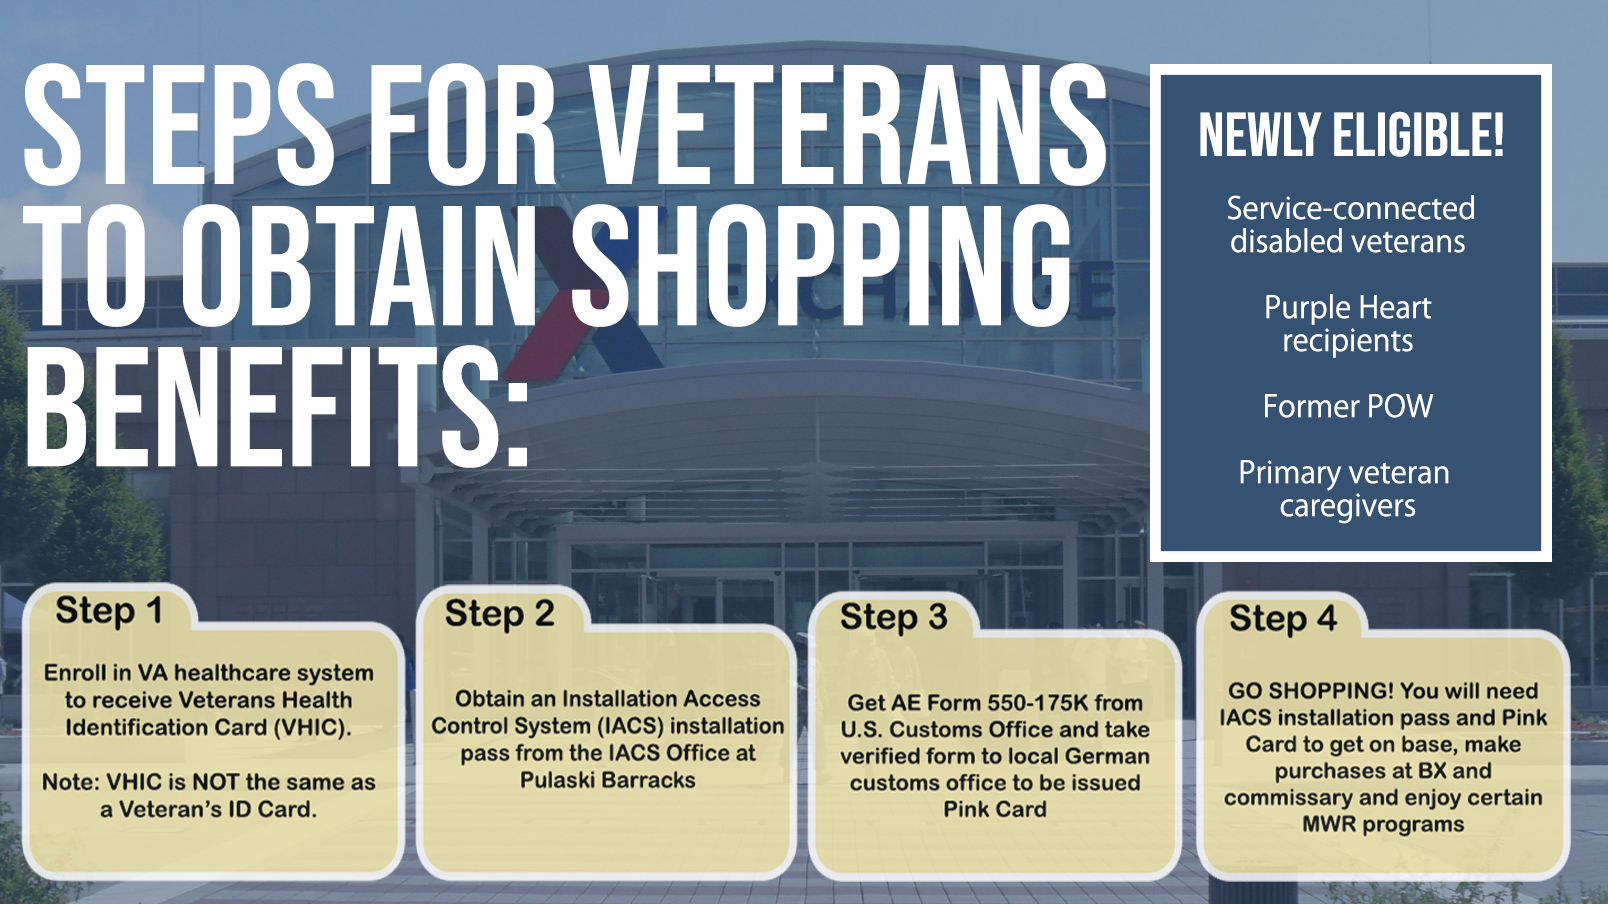 Team Effort Helps Expanded Shopping Privileges For Veterans In Kmc - Kmc Tax Payment Online